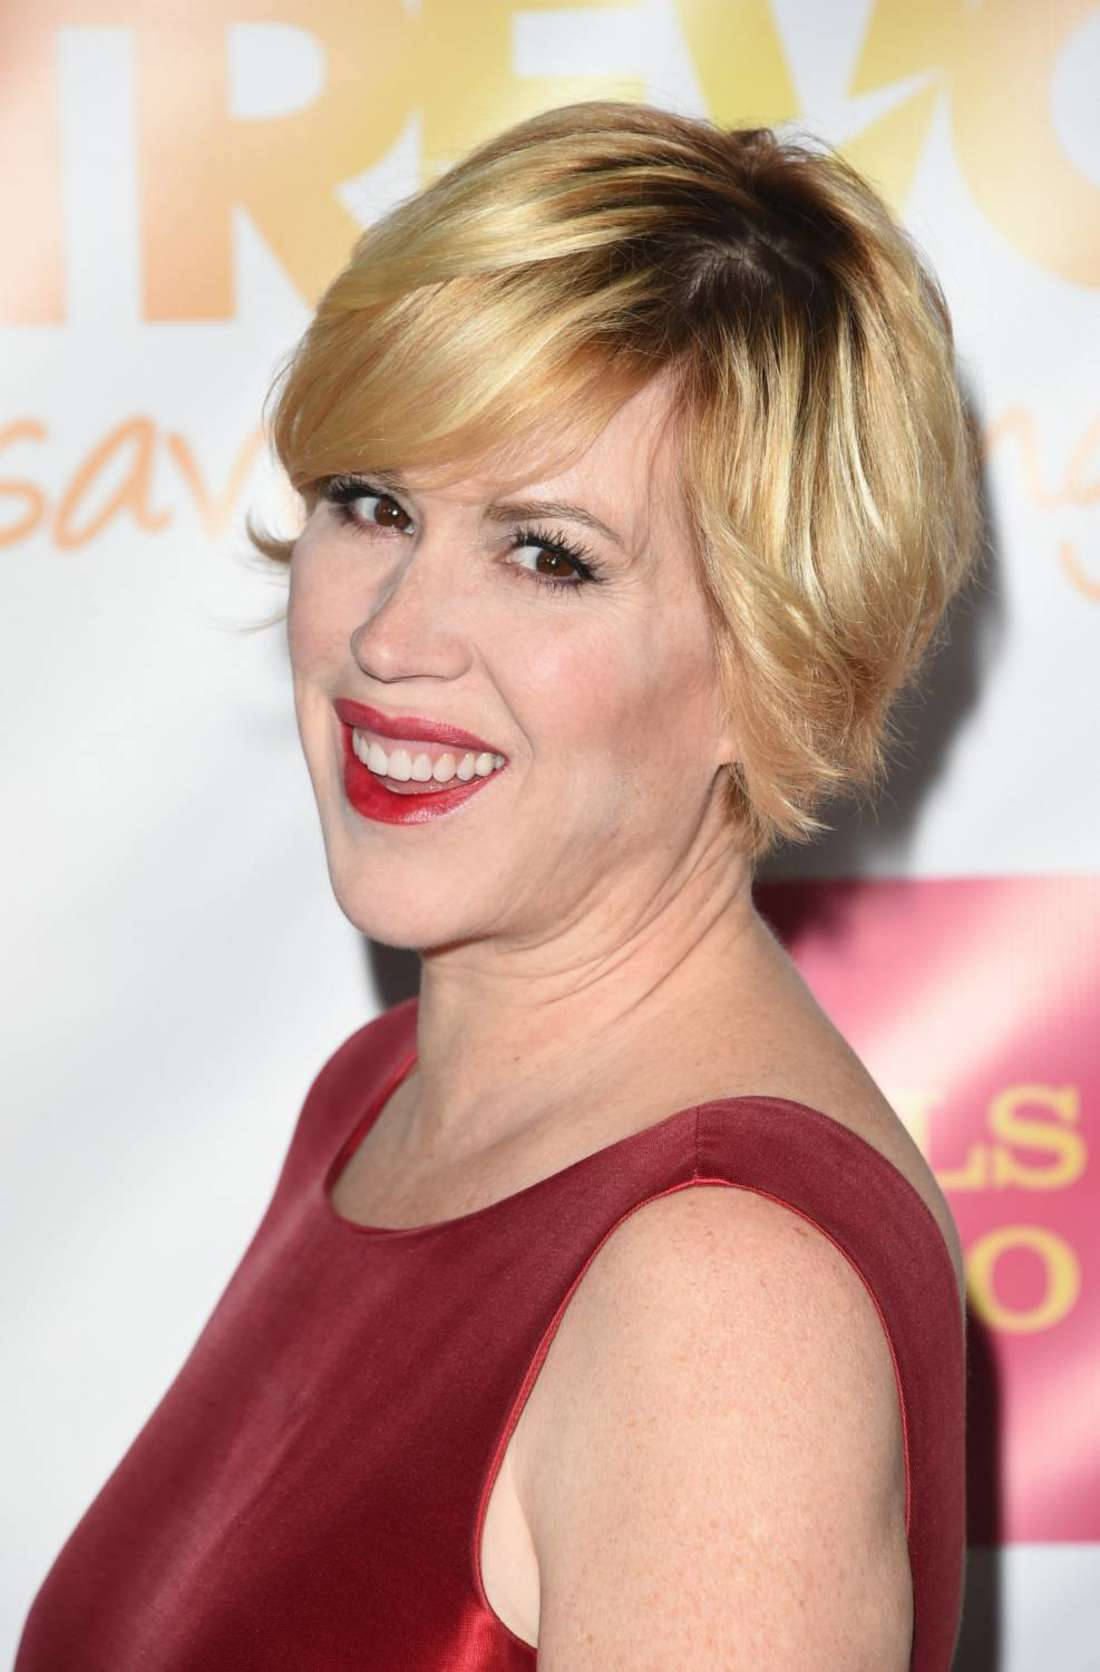 Molly Ringwald TrevorLIVE The Trevor Project Event in Los Angeles